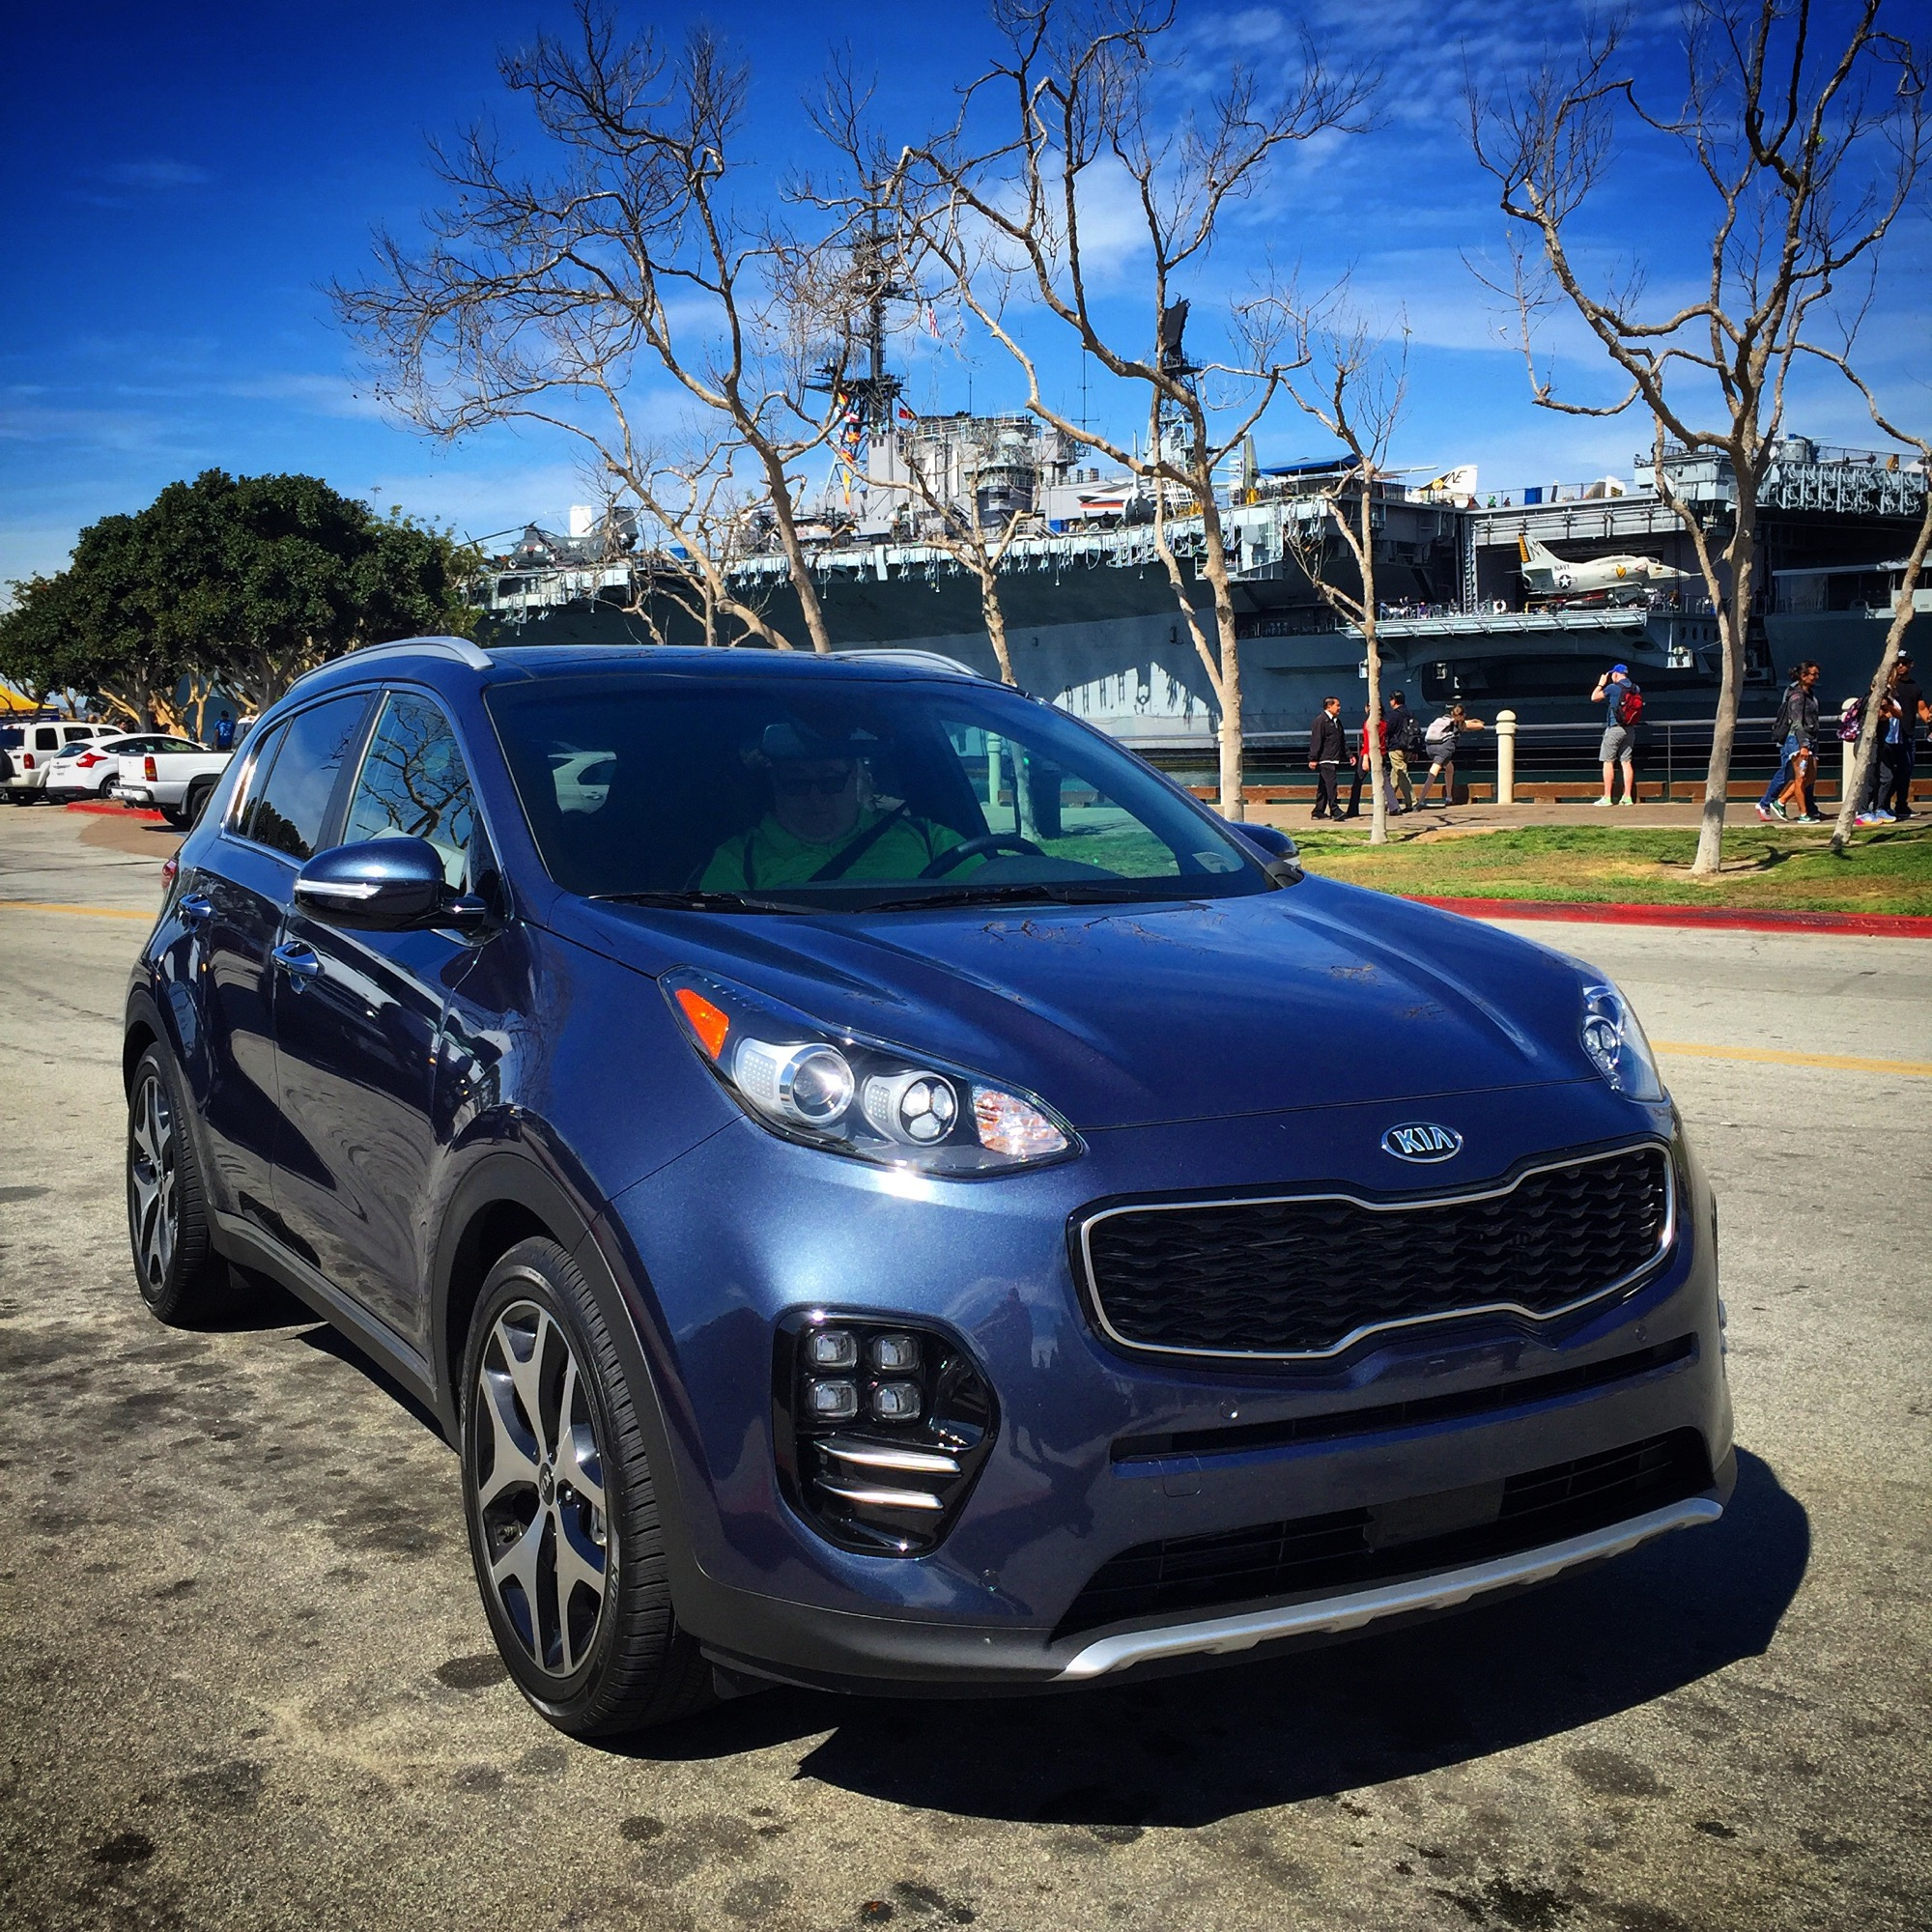 sorento angeles auto hawaii show blue kia los la stinger thejetsetfamily